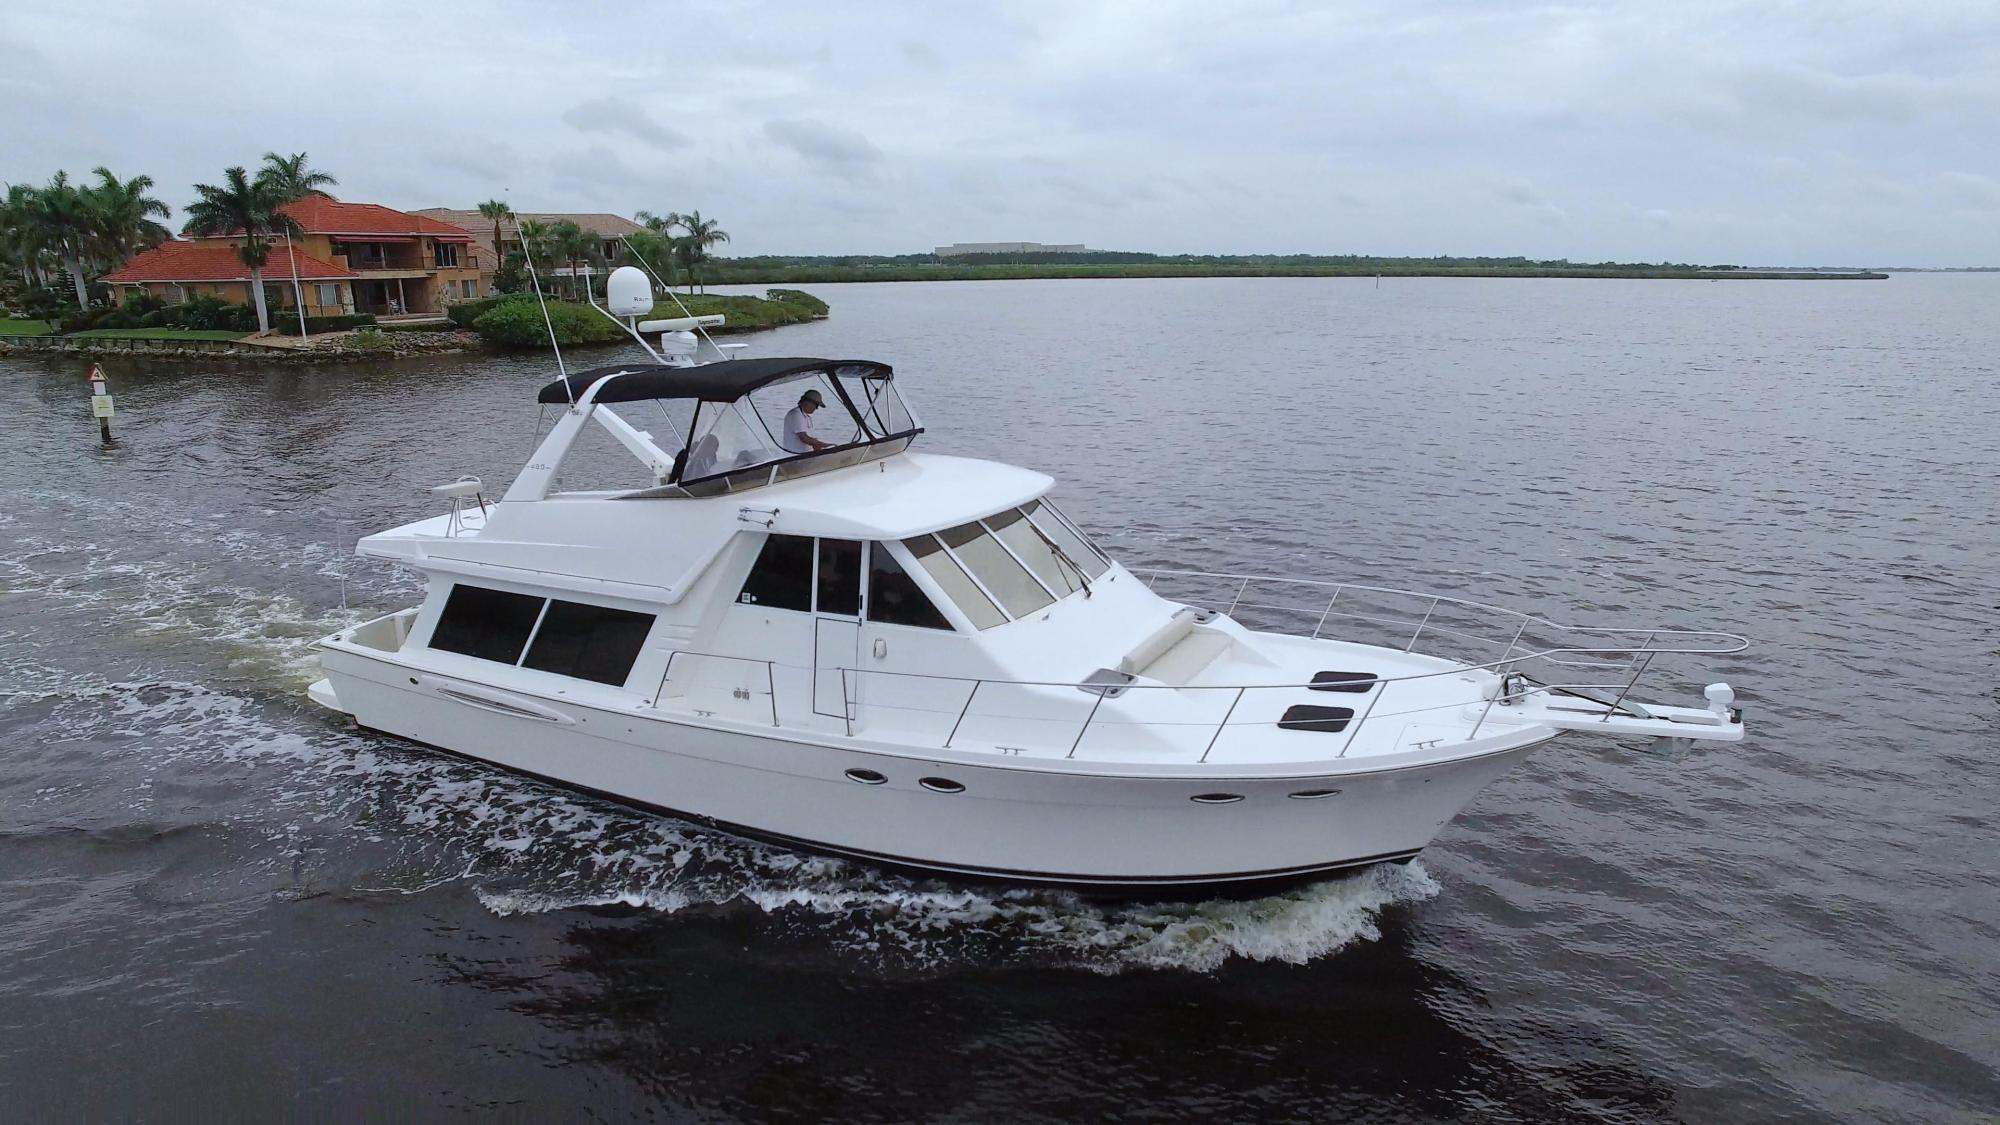 hight resolution of 2007 meridian 490 with the electronic smokeless quiet 380 hp engines